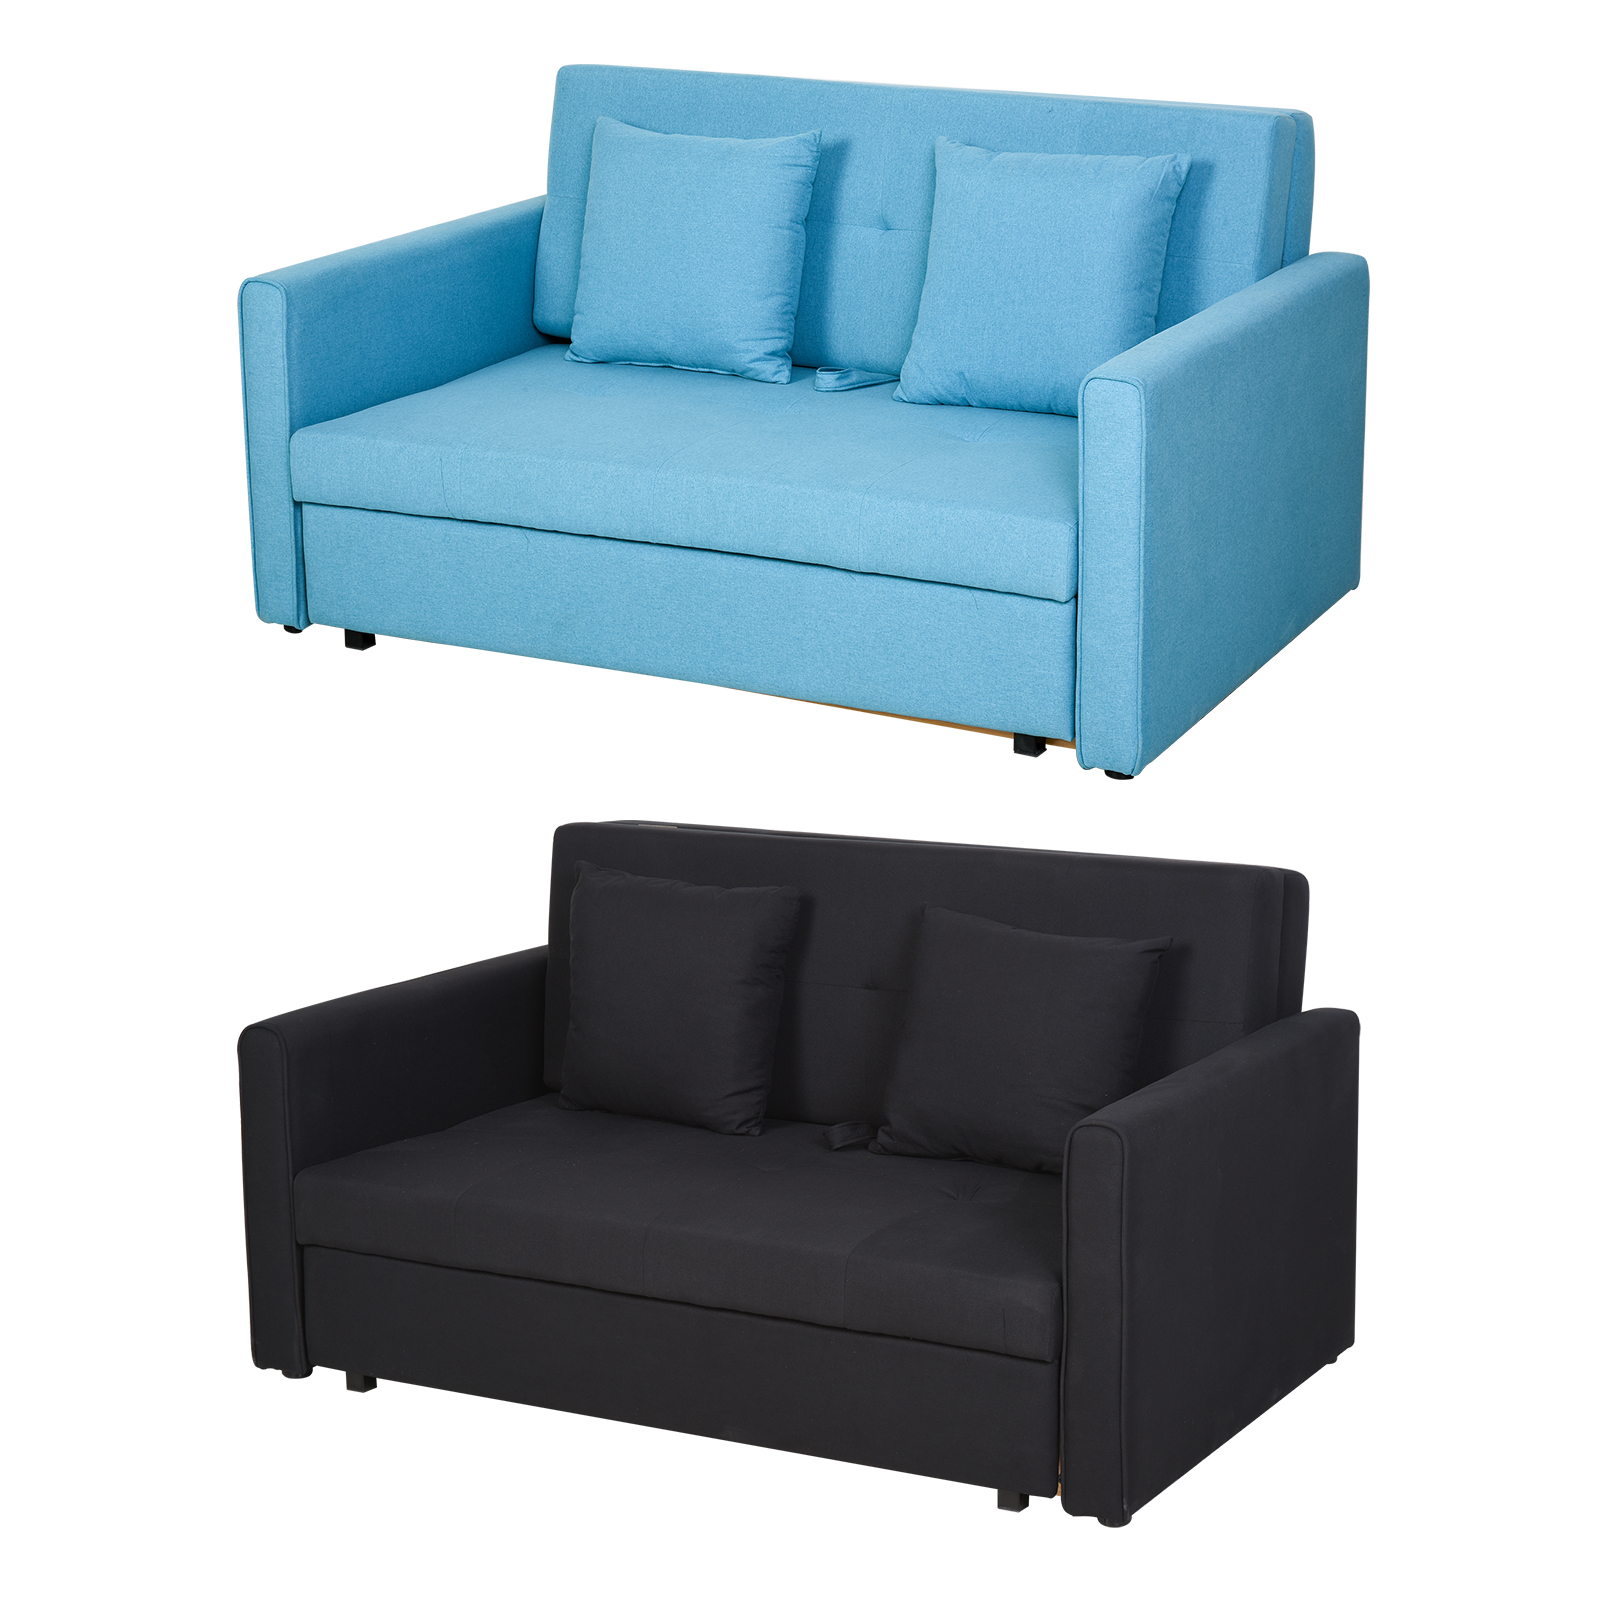 2 Seater Storage Sofa Convertible Bed Wood Frame Padding Compact Bedroom Ebay